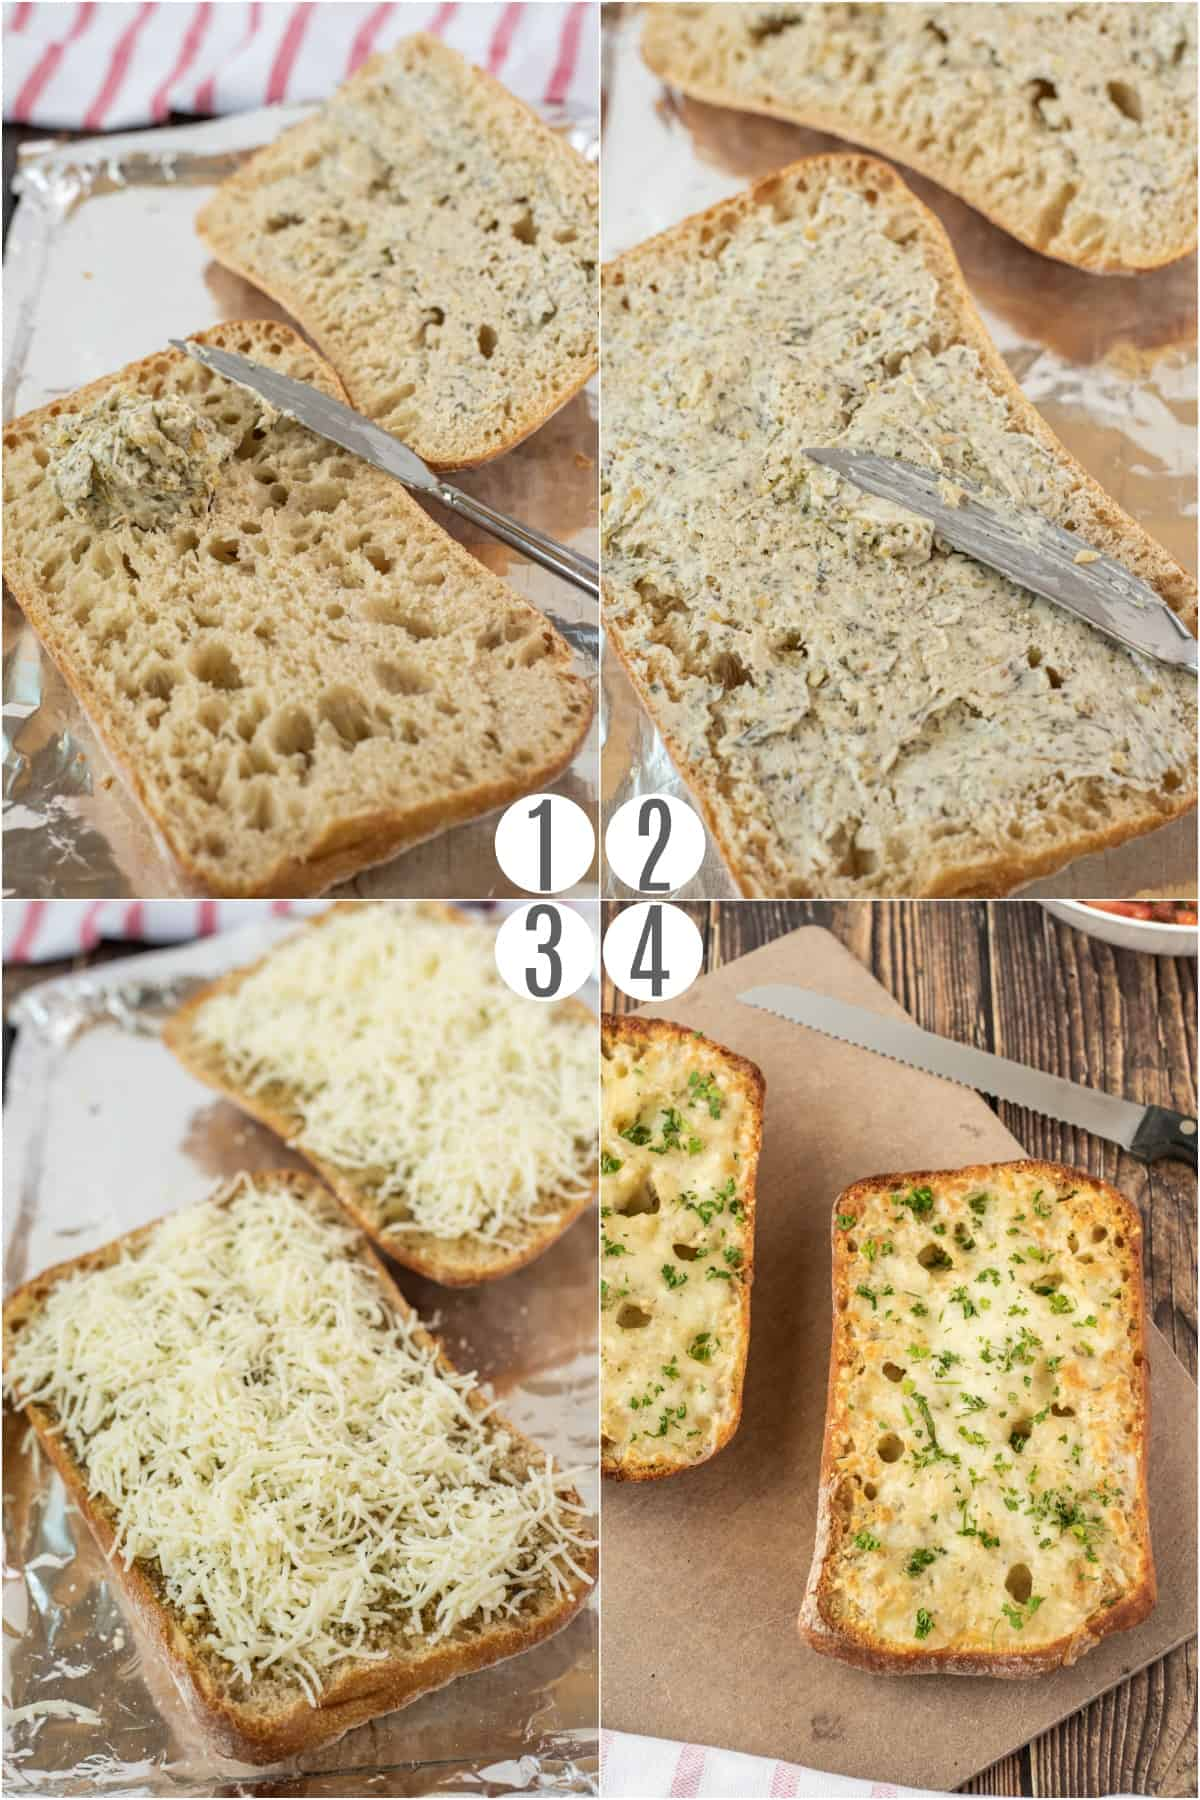 Step by step photos showing how to make cheesy garlic bread.